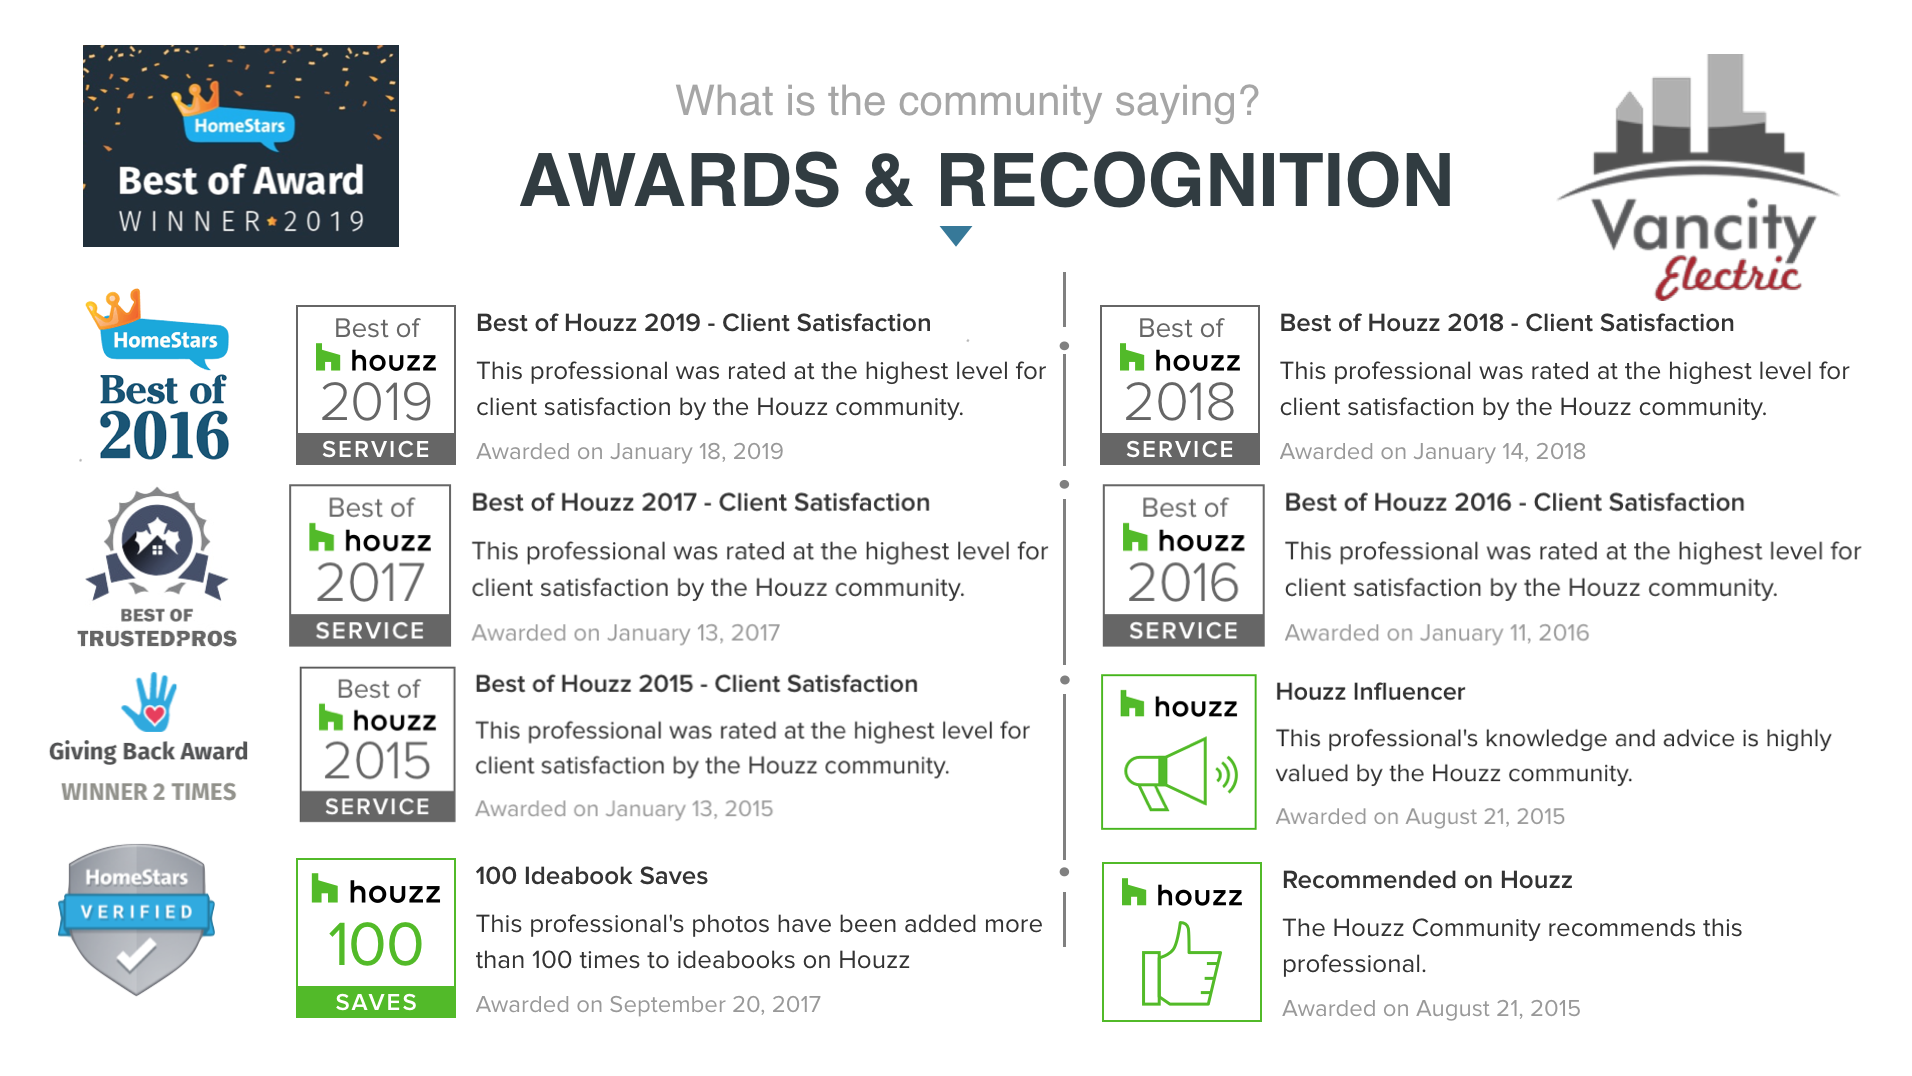 VANCITY ELECTRIC HAS BEEN AWARDED BEST OF HOMESTARS, BEST OF HOUZZ, BEST OF TRUSTED PROS AND RECEIVED THE GIVING BACK AWARD TWO TIMES